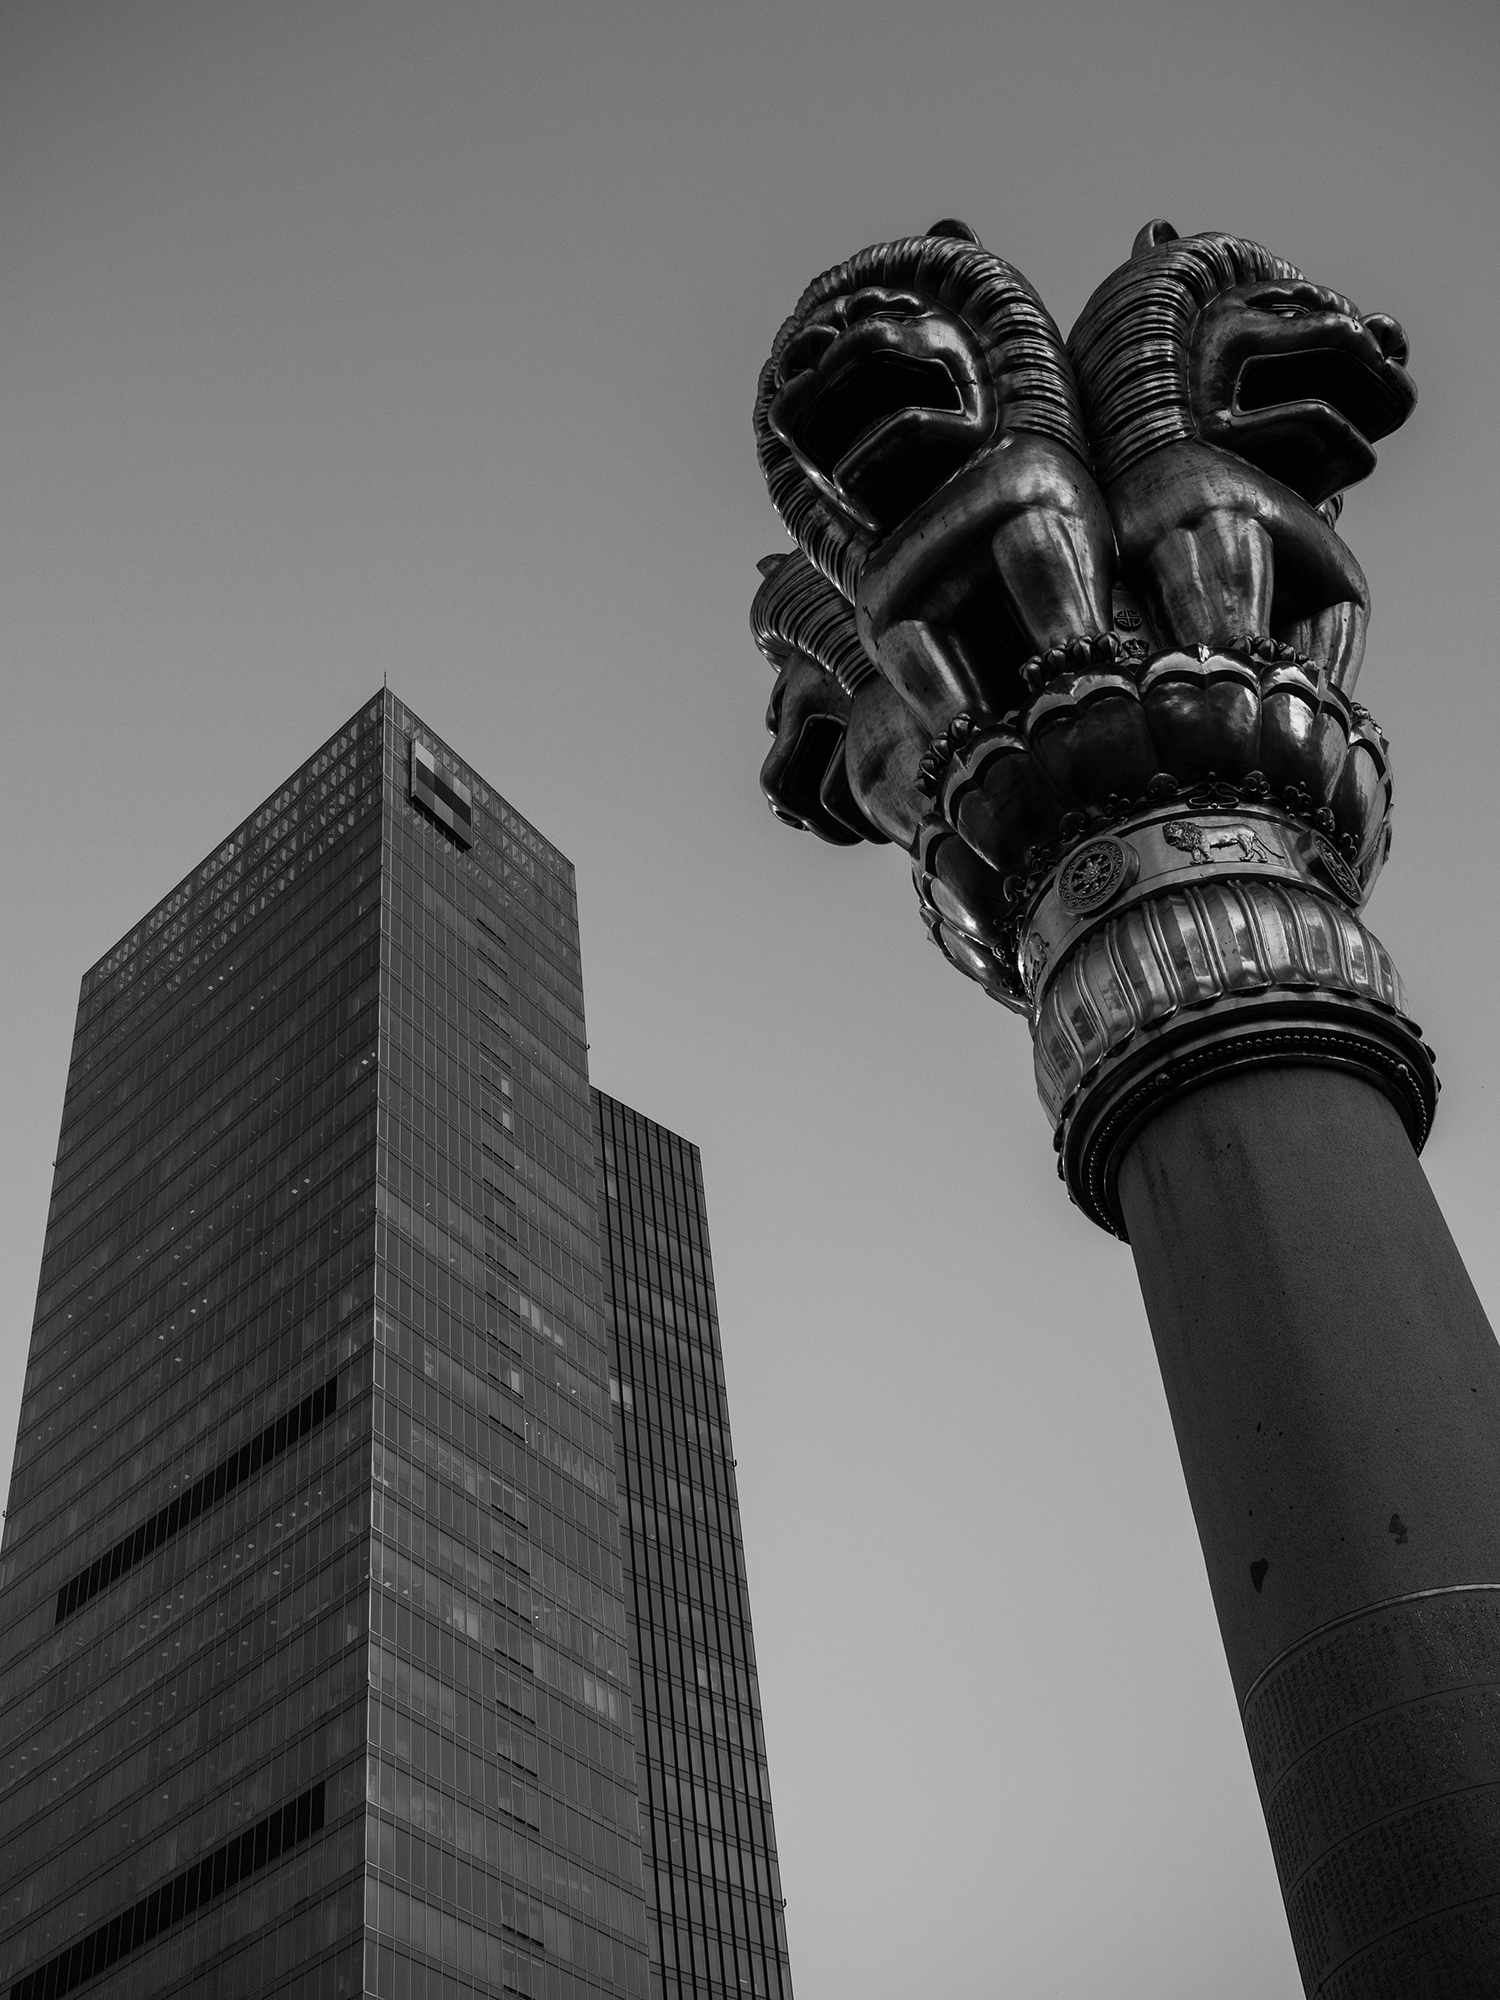 In the Midst of the Madding Crowd, Jing%u2019an Temple, Shanghai, Alvin Campos.png